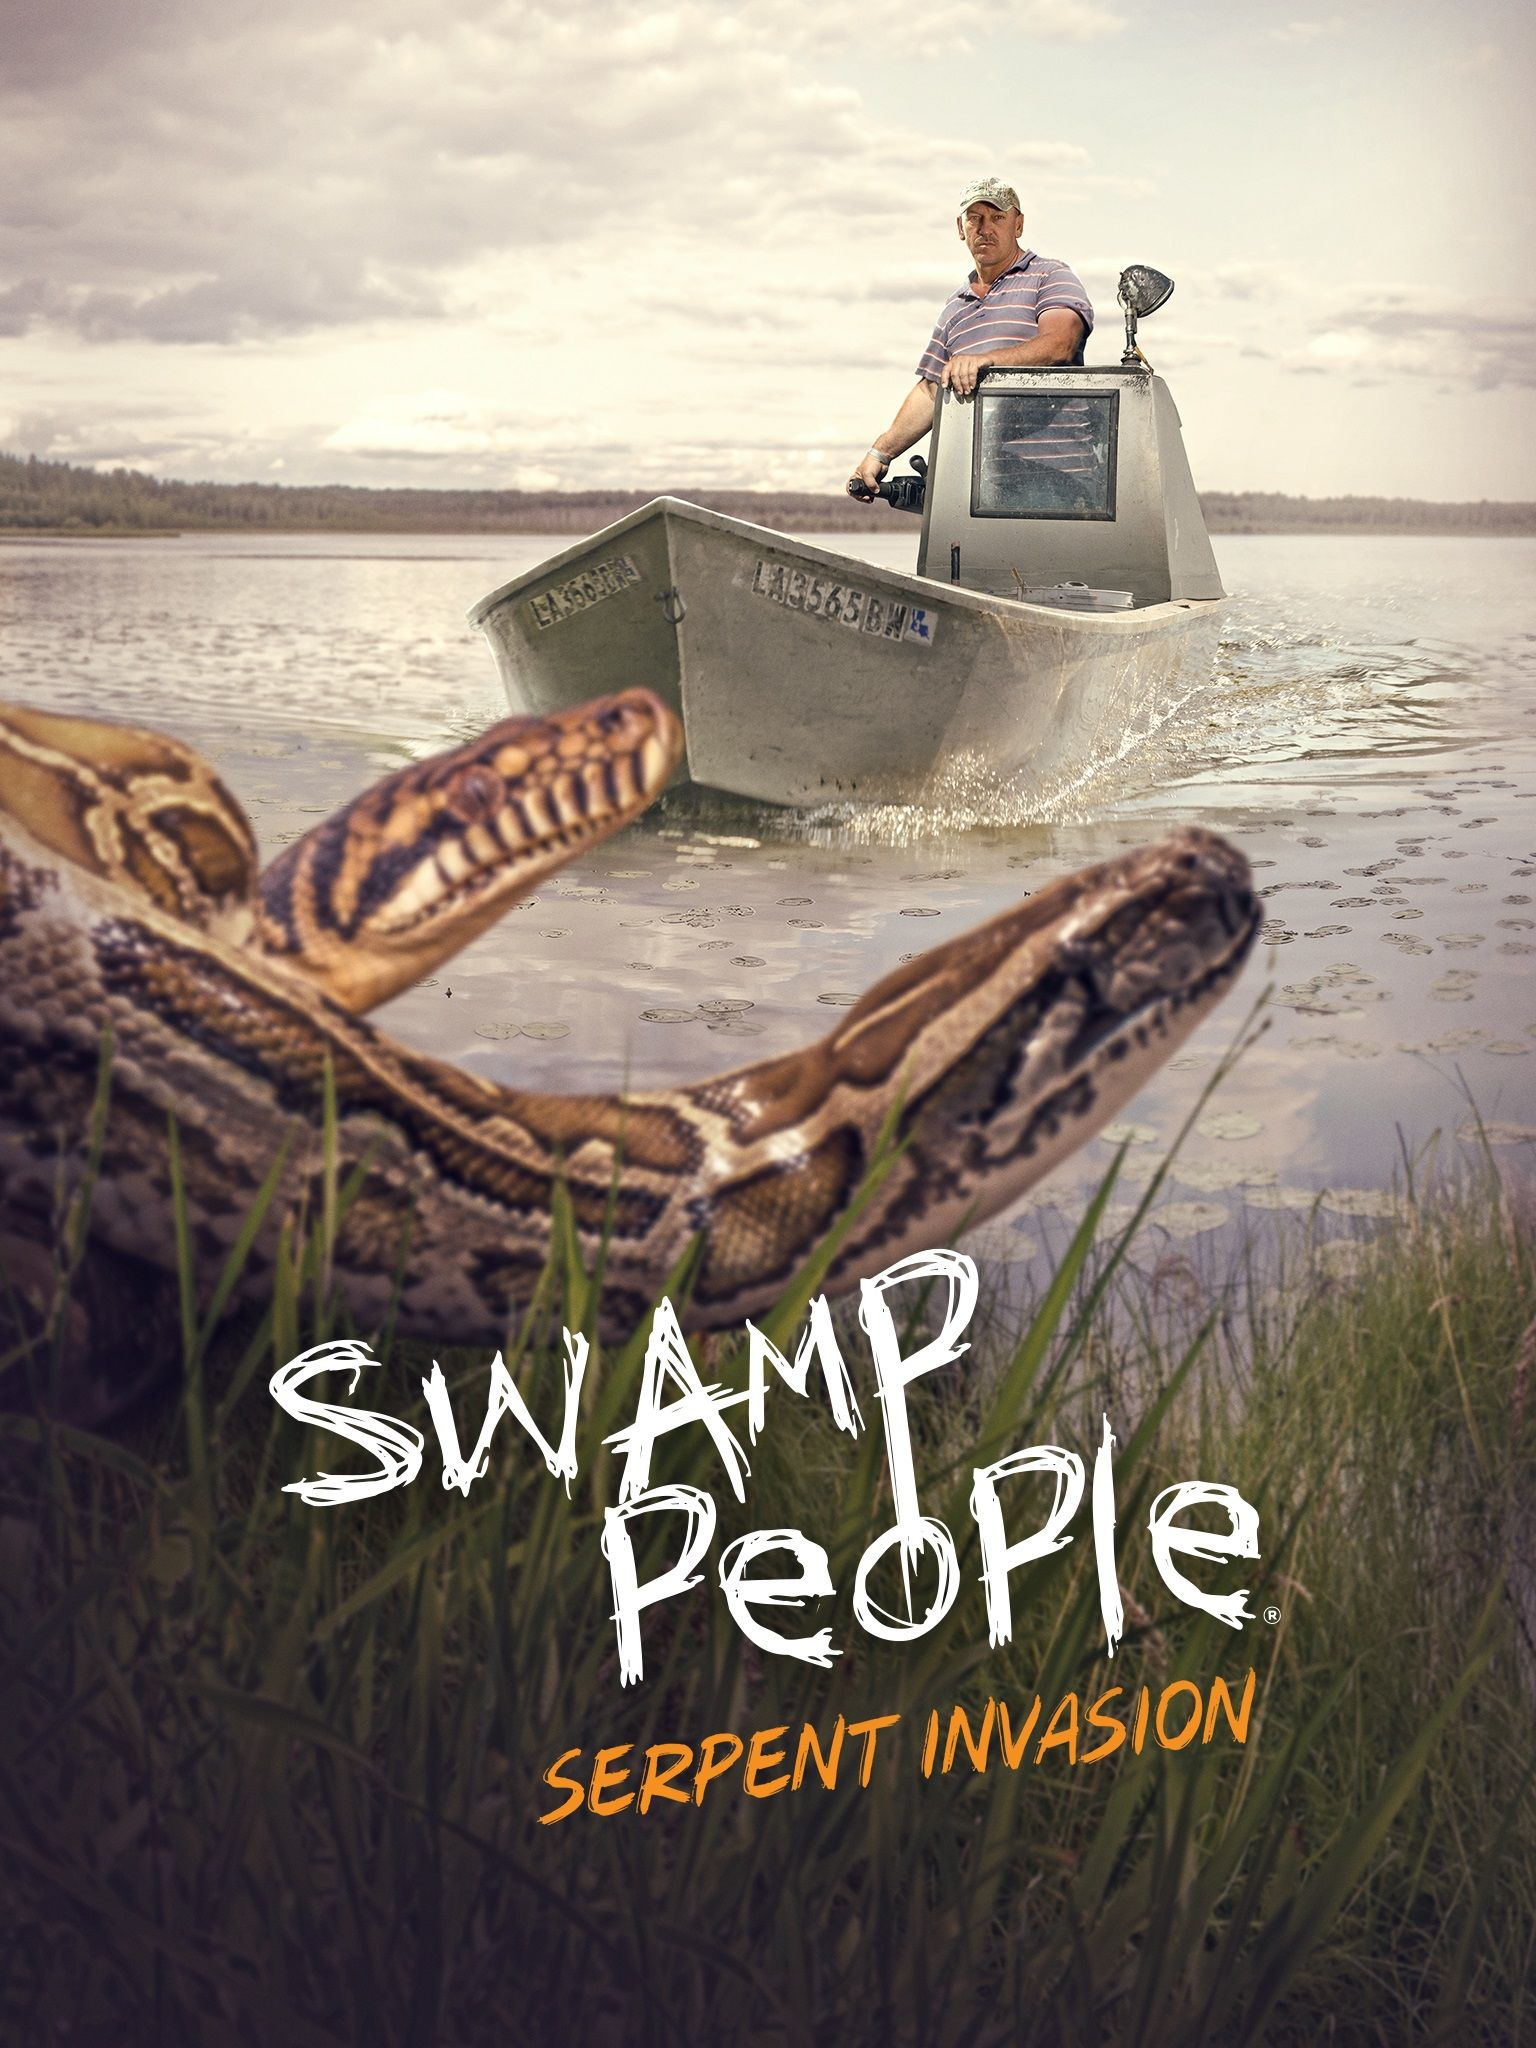 Swamp People: Serpent Invasion Season 2 Episode 6